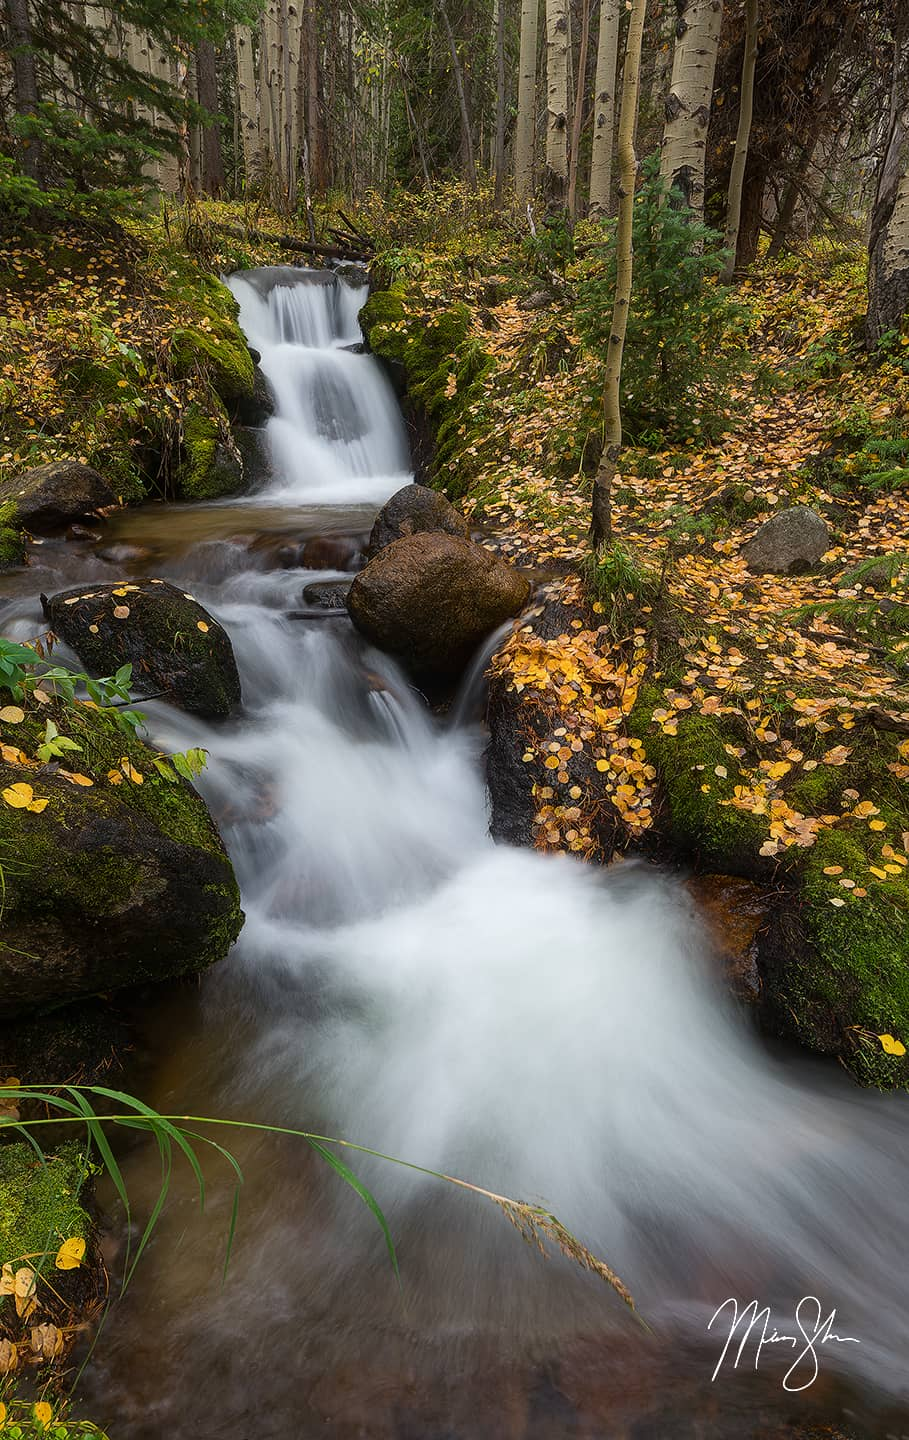 Open edition fine art print of Aspen Gold at Boulder Brook from Mickey Shannon Photography. Location: Boulder Brook, Rocky Mountain National Park, Colorado